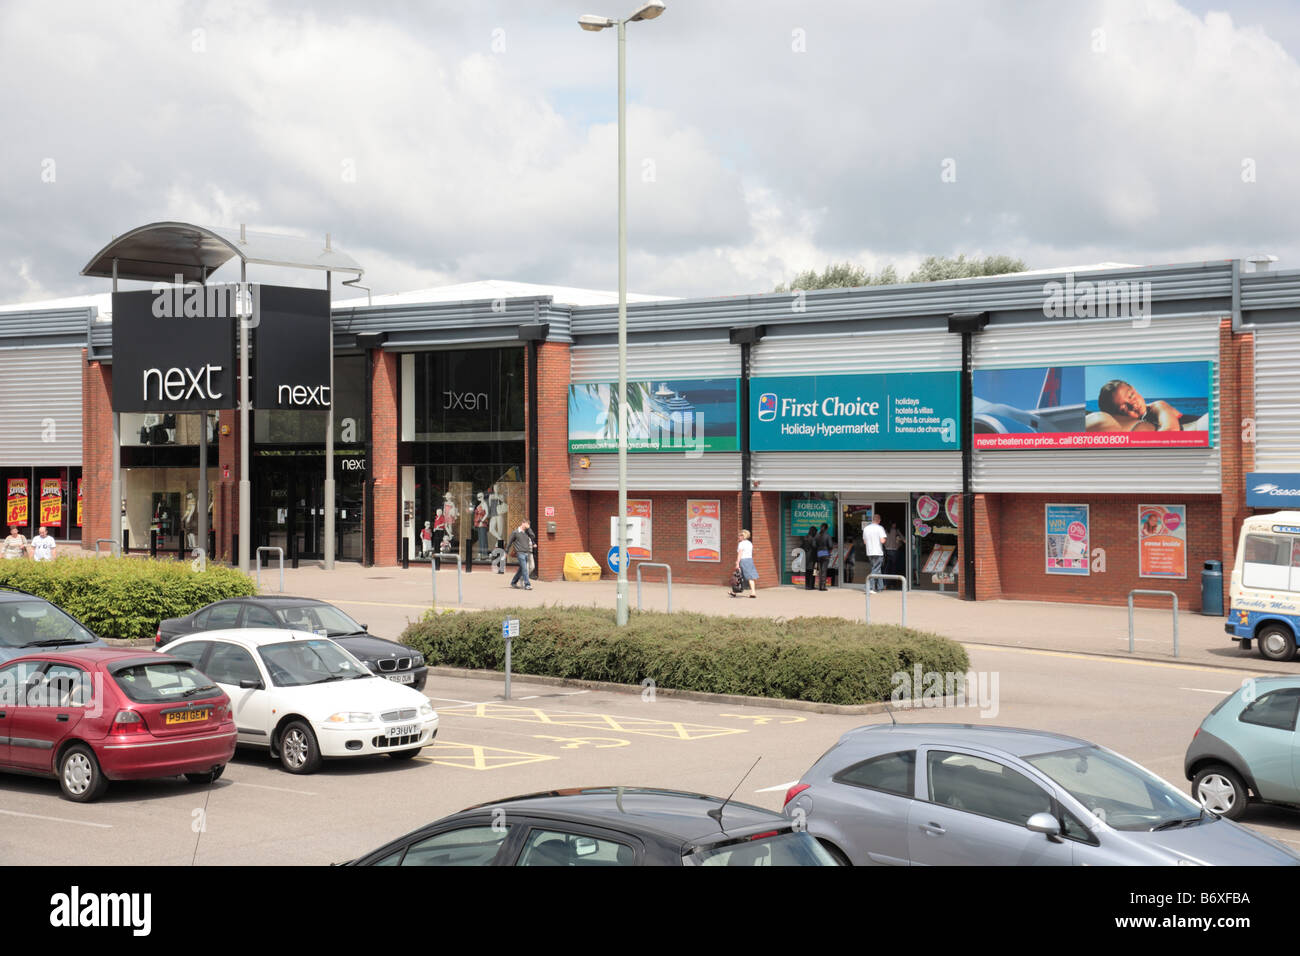 lovely first choice retail #5: Next and First Choice, Festival Retail Park, Stoke-on-Trent